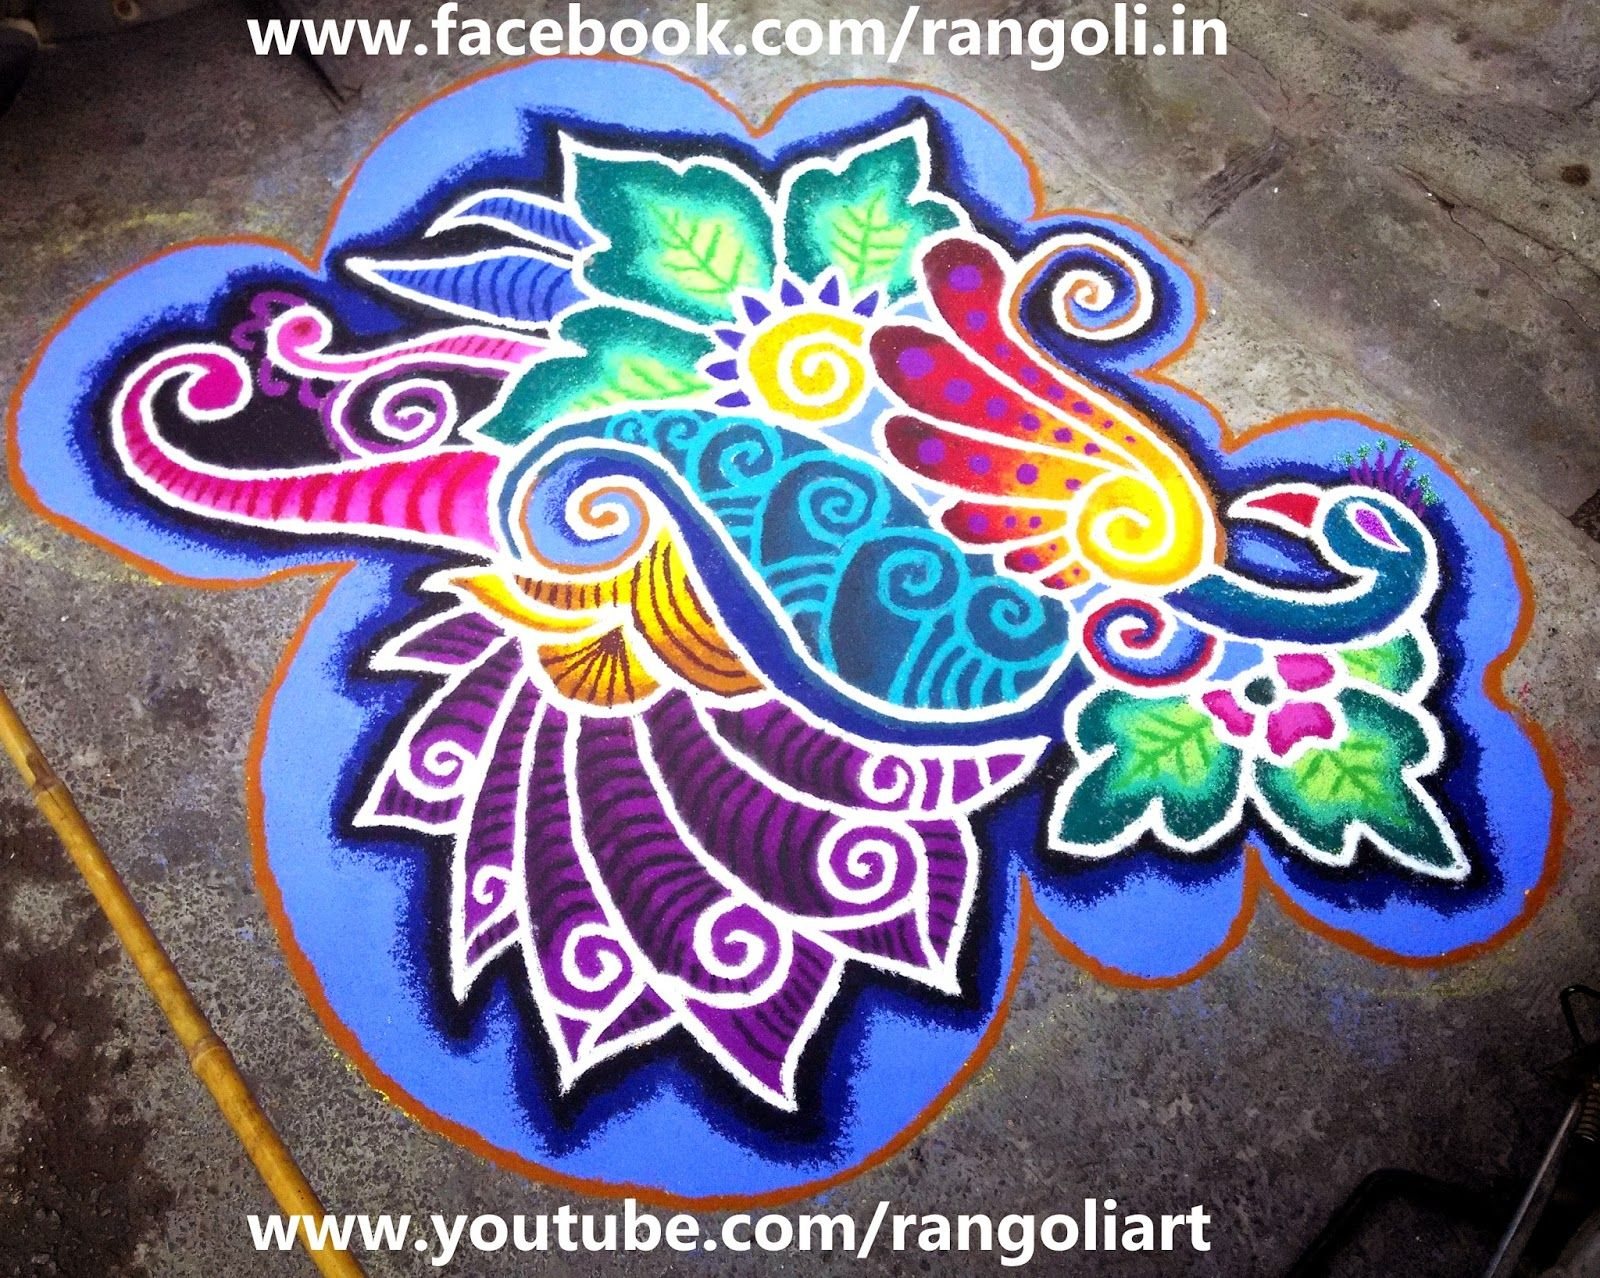 What are some features of Rangoli art?